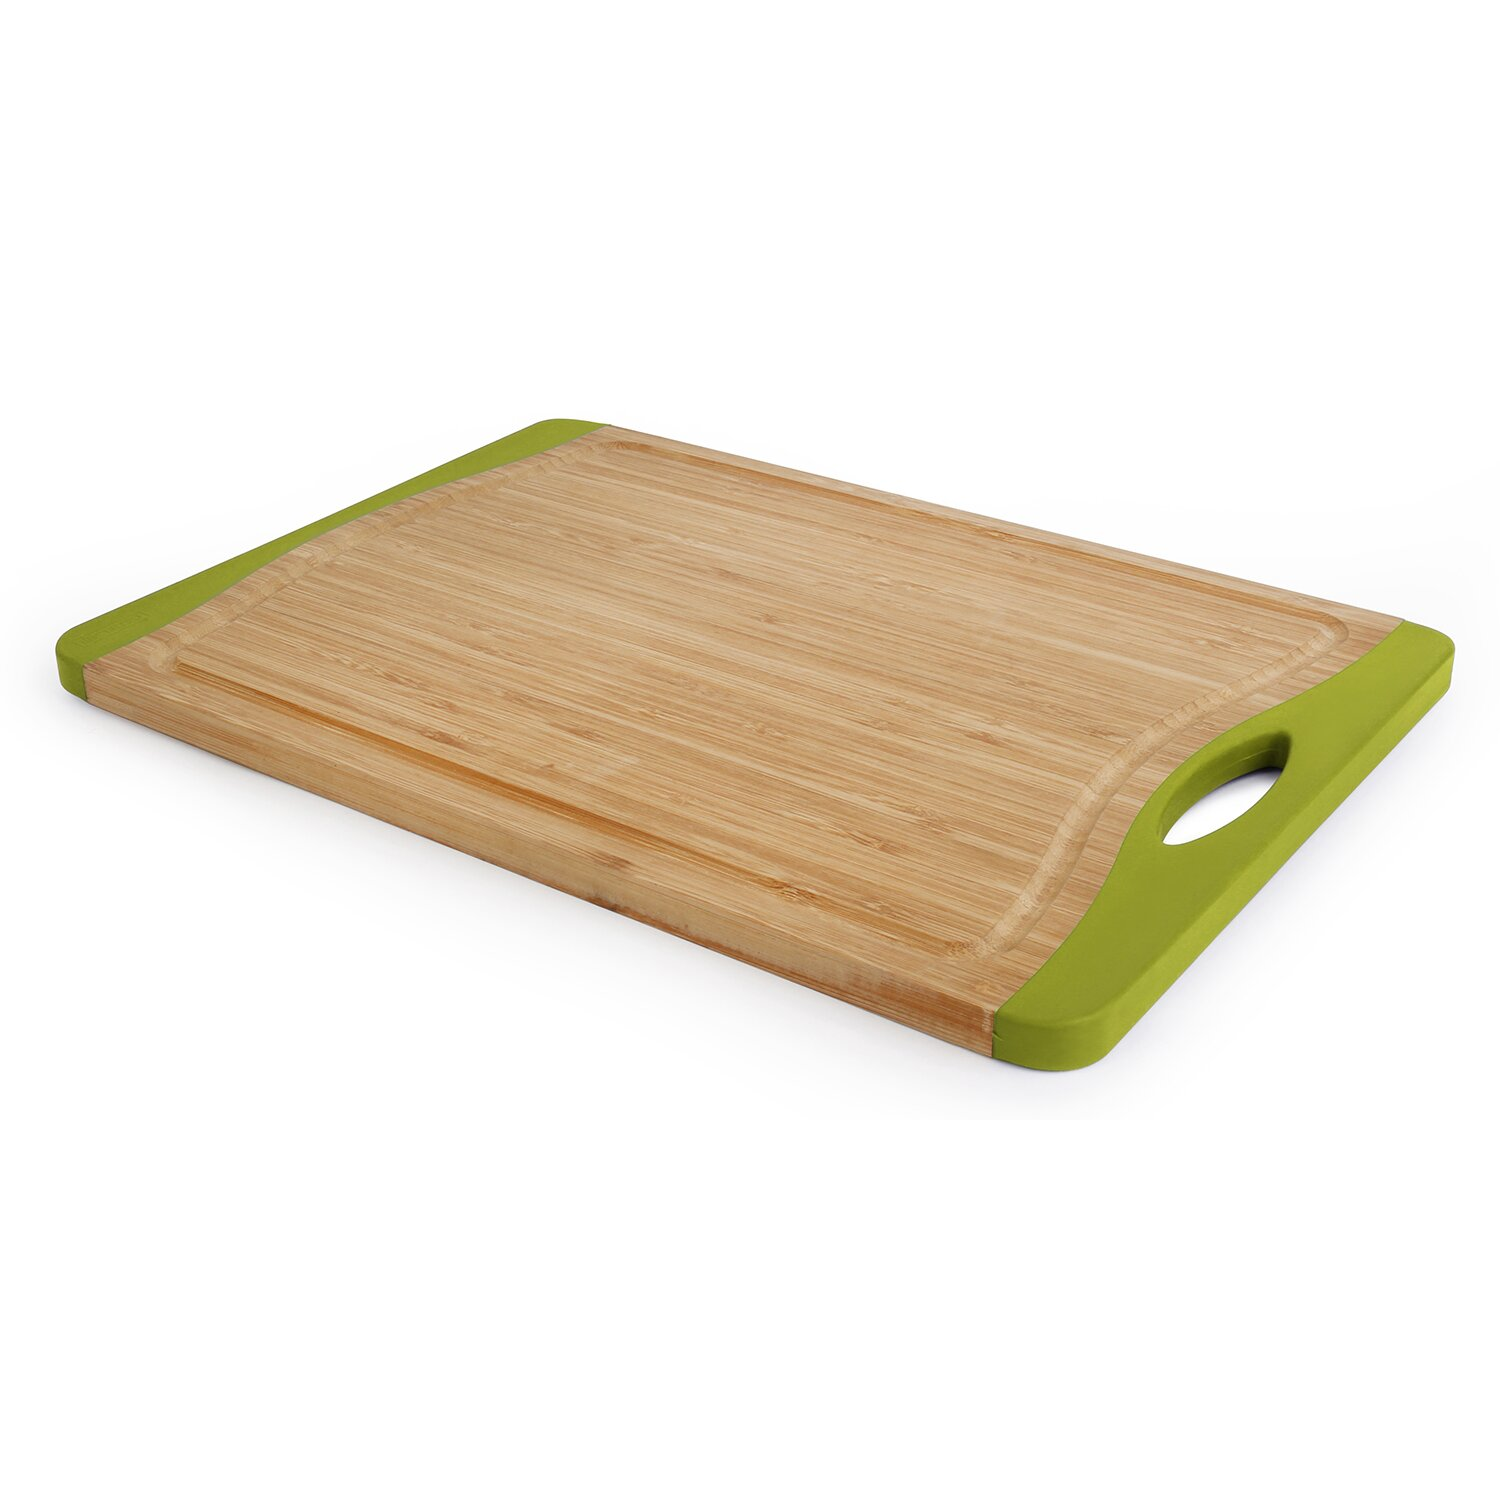 Cutting Board: Neoflam Flutto Bamboo Cutting Board & Reviews